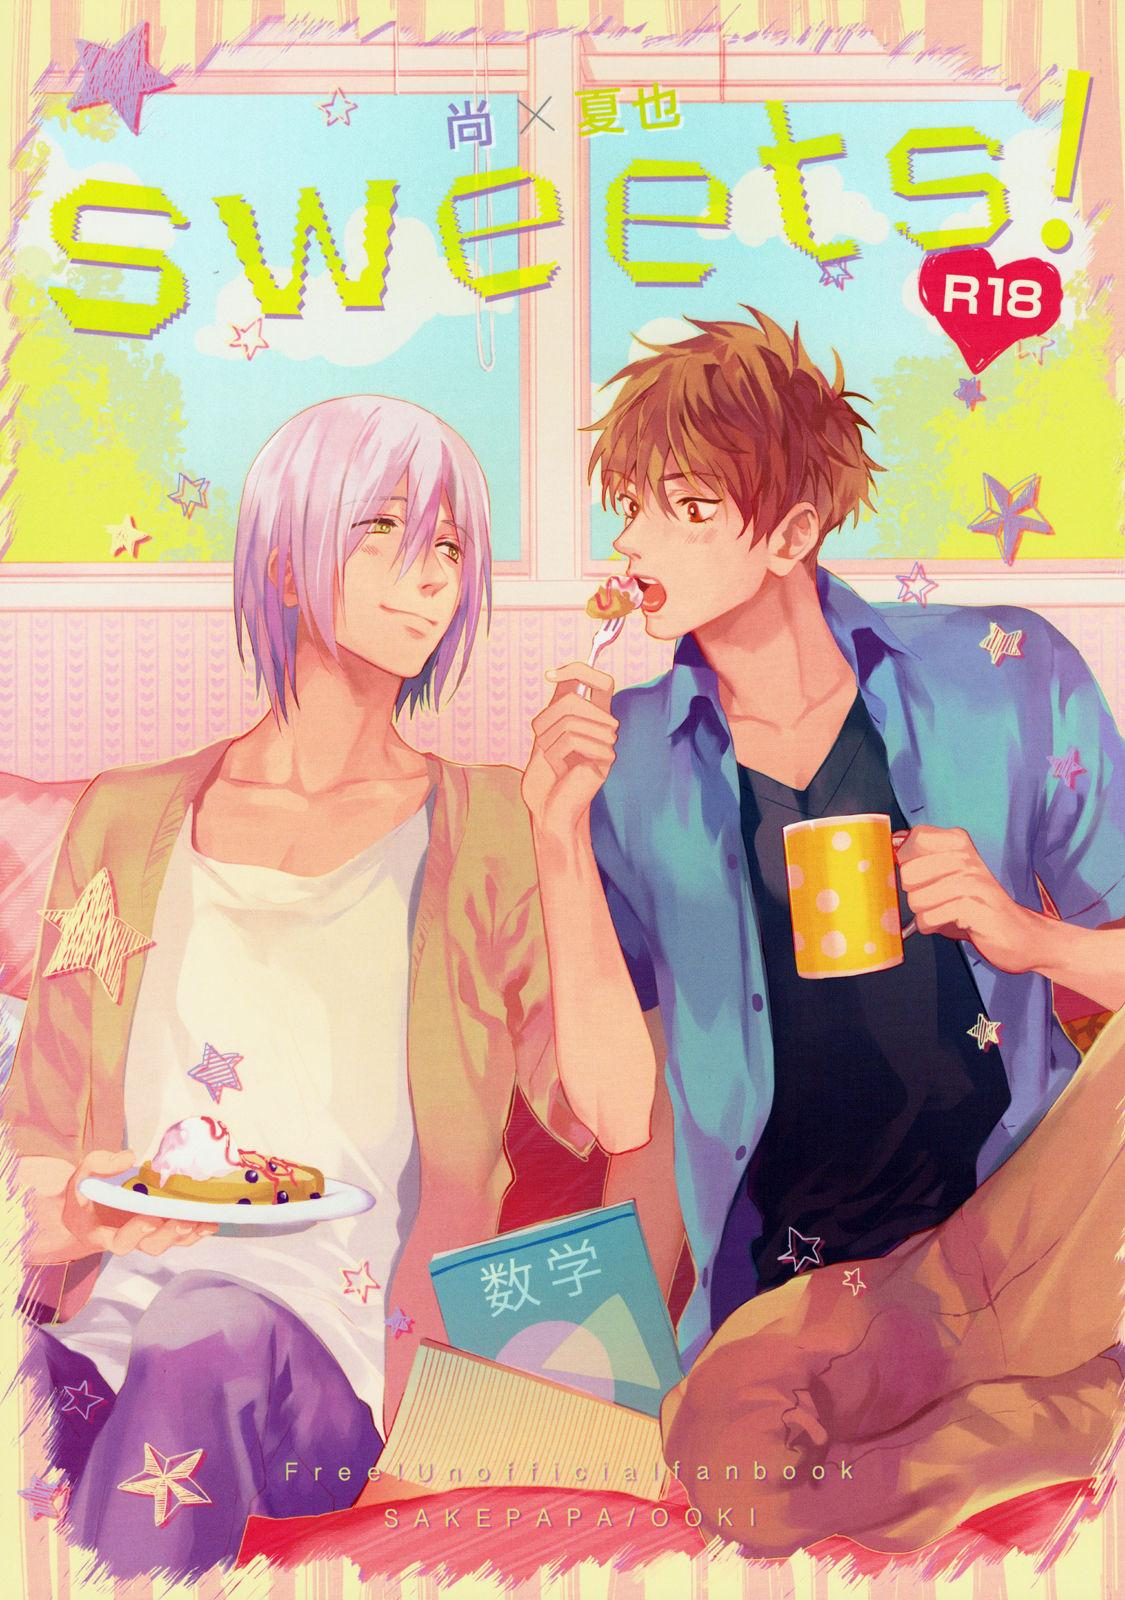 Sweets! 0